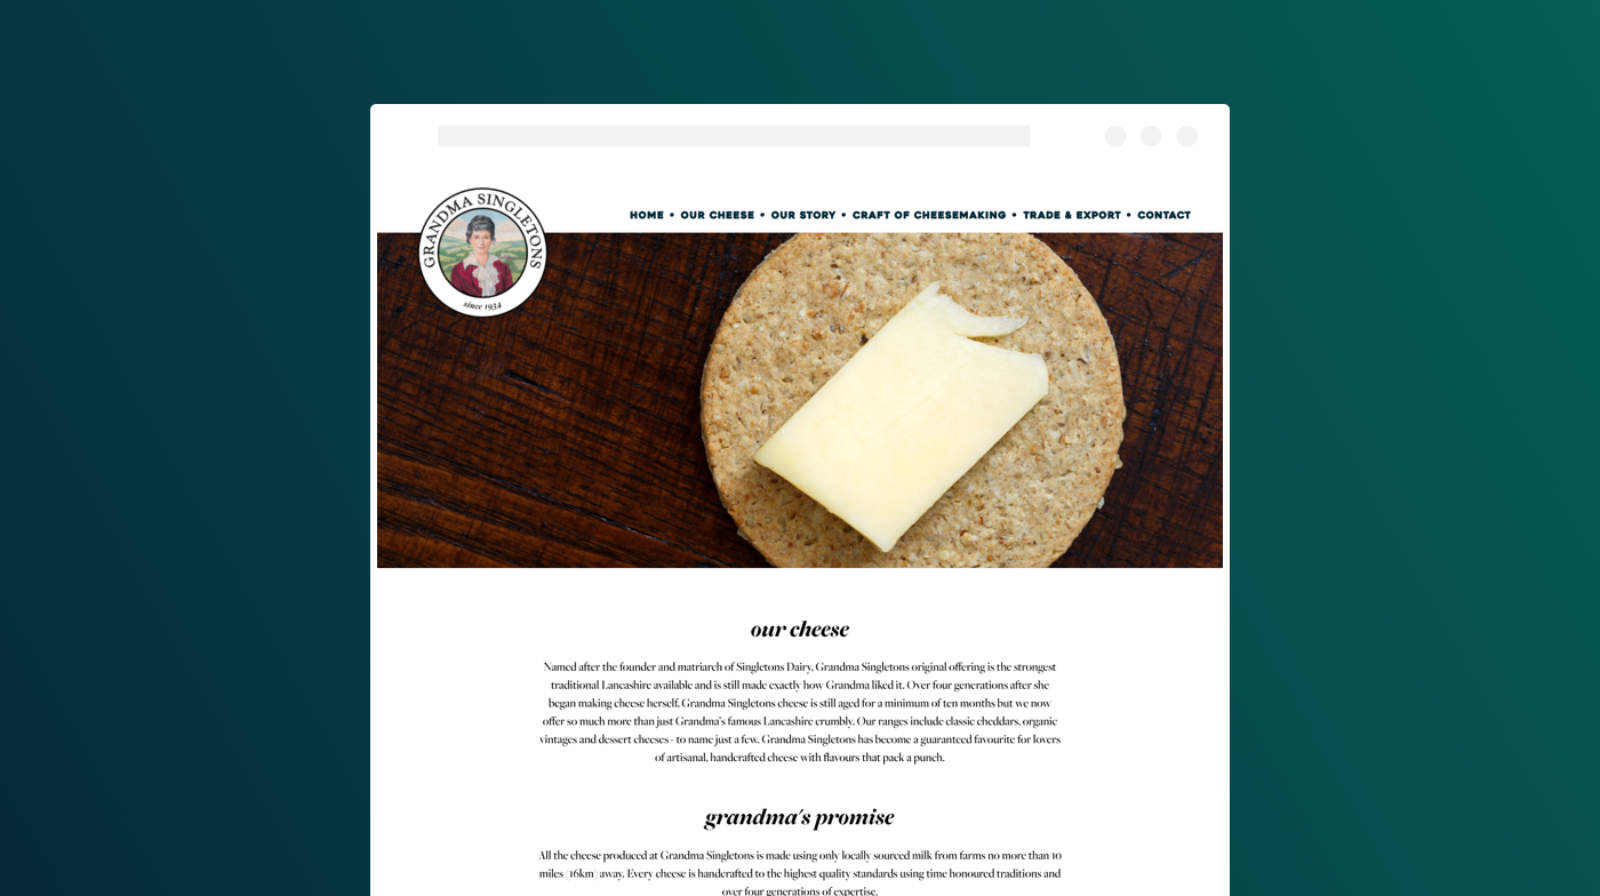 The new our cheese page